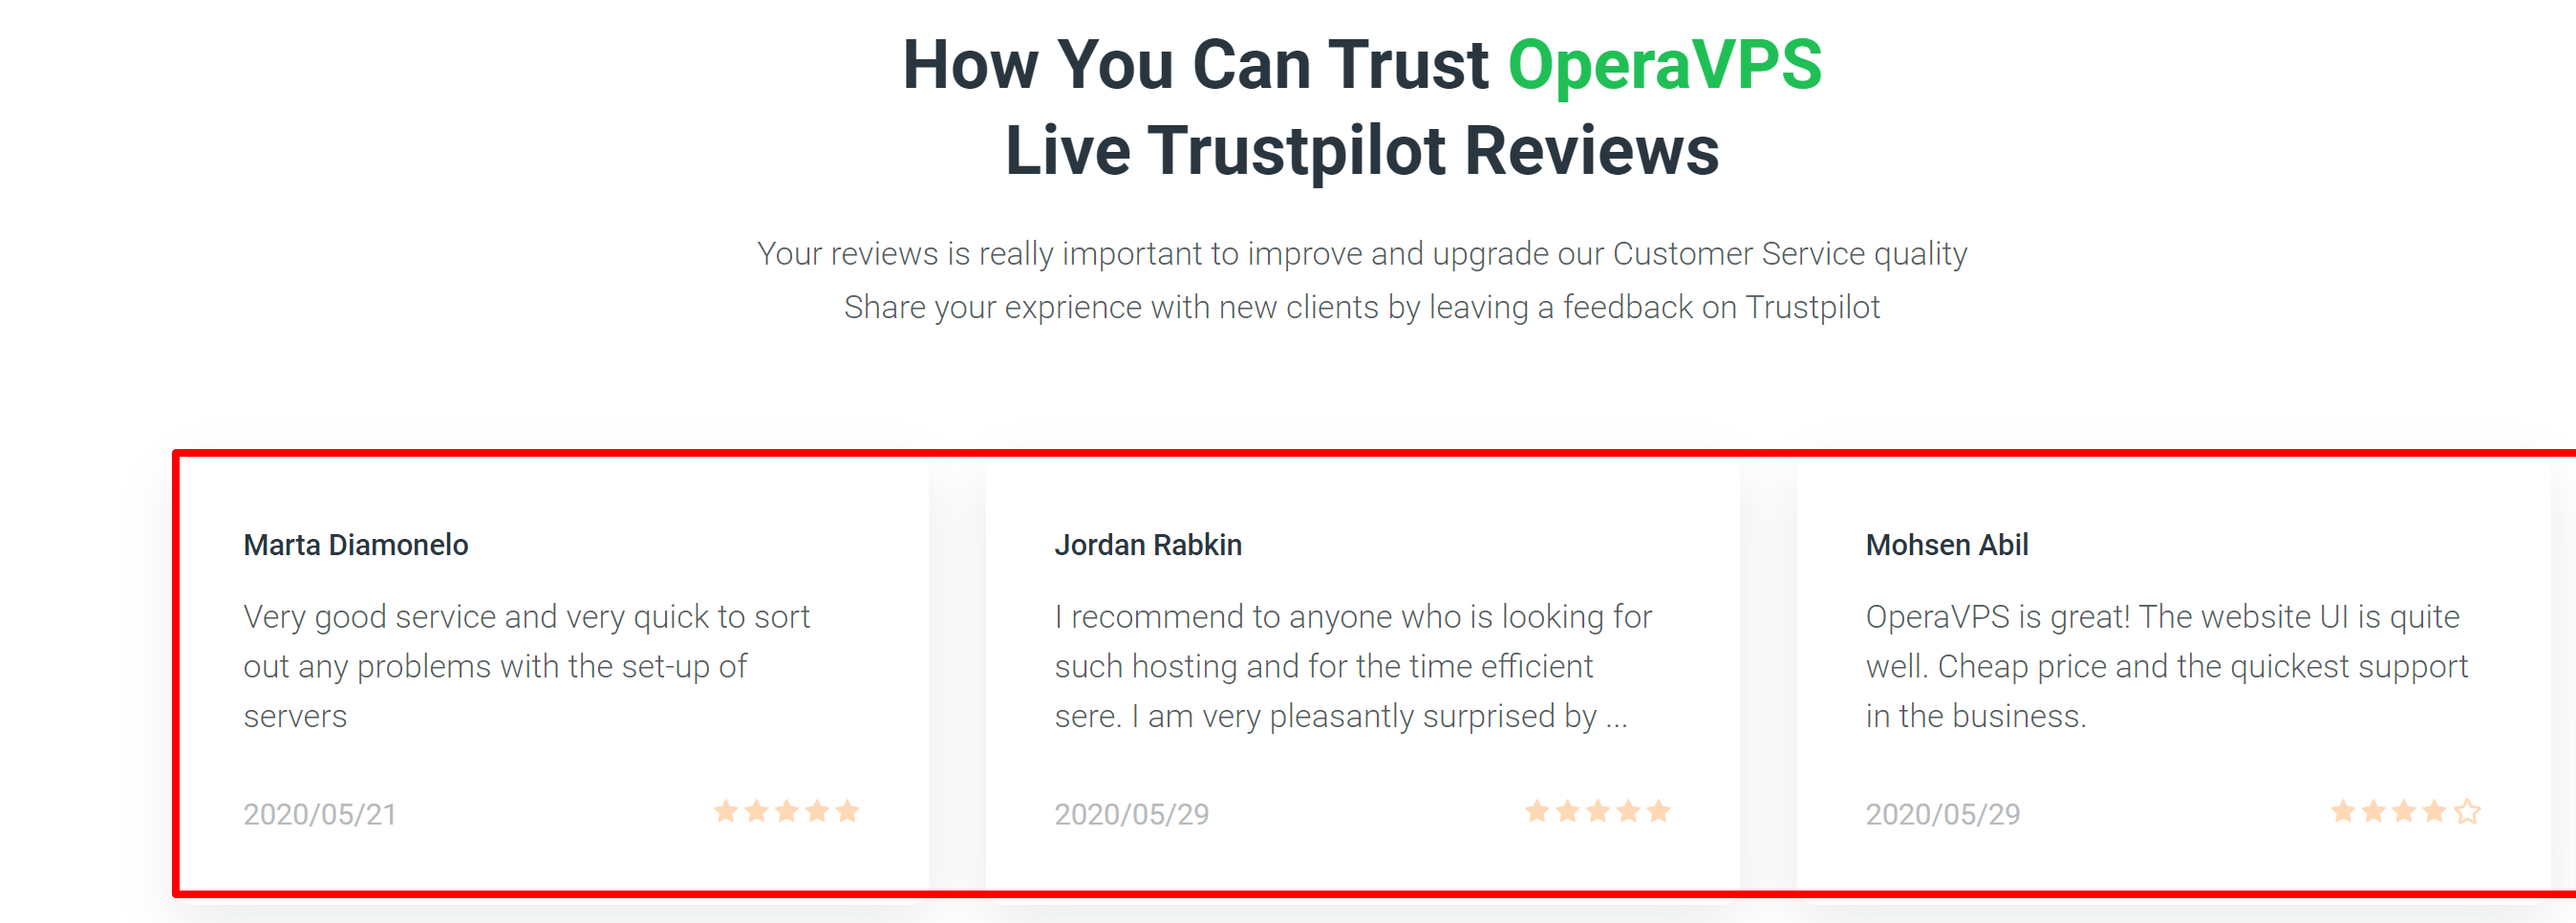 Opera VPs testimonials and reviews by customers